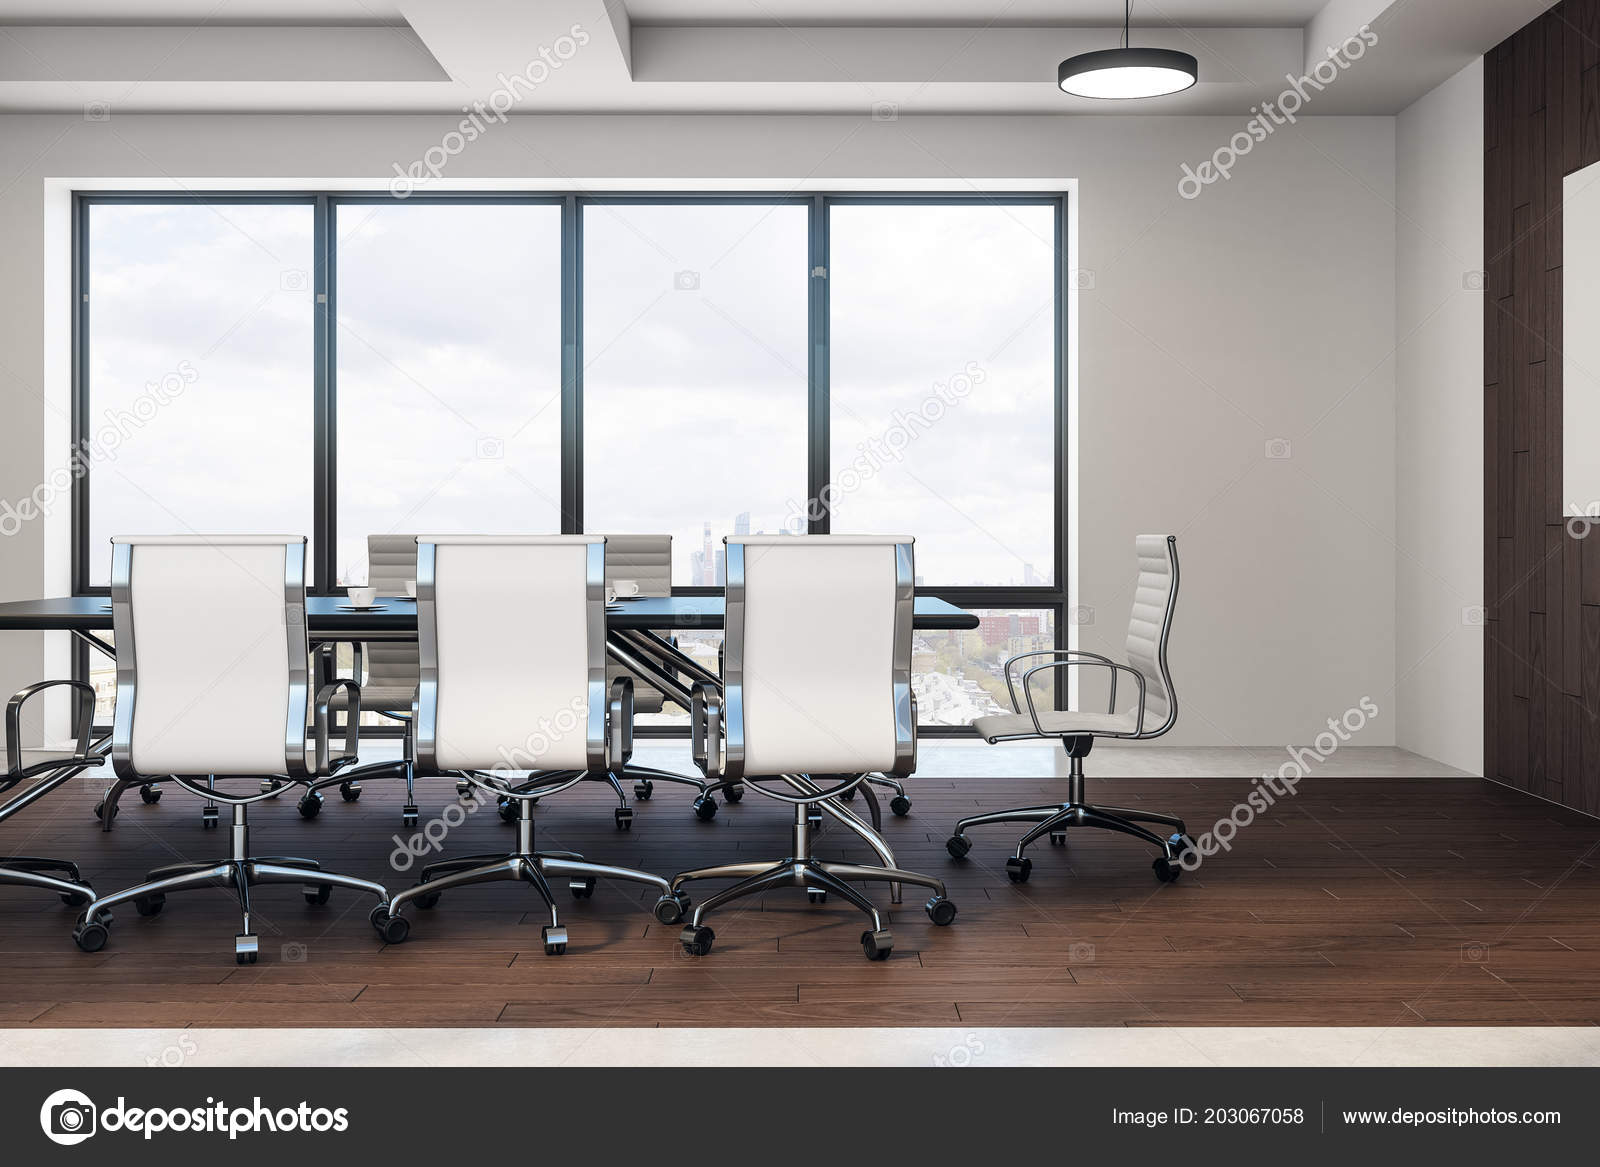 Modern conference room with chairs and meeting table on wooden floor and  windows floor-to-ceiling. 49D rendering 2049067058